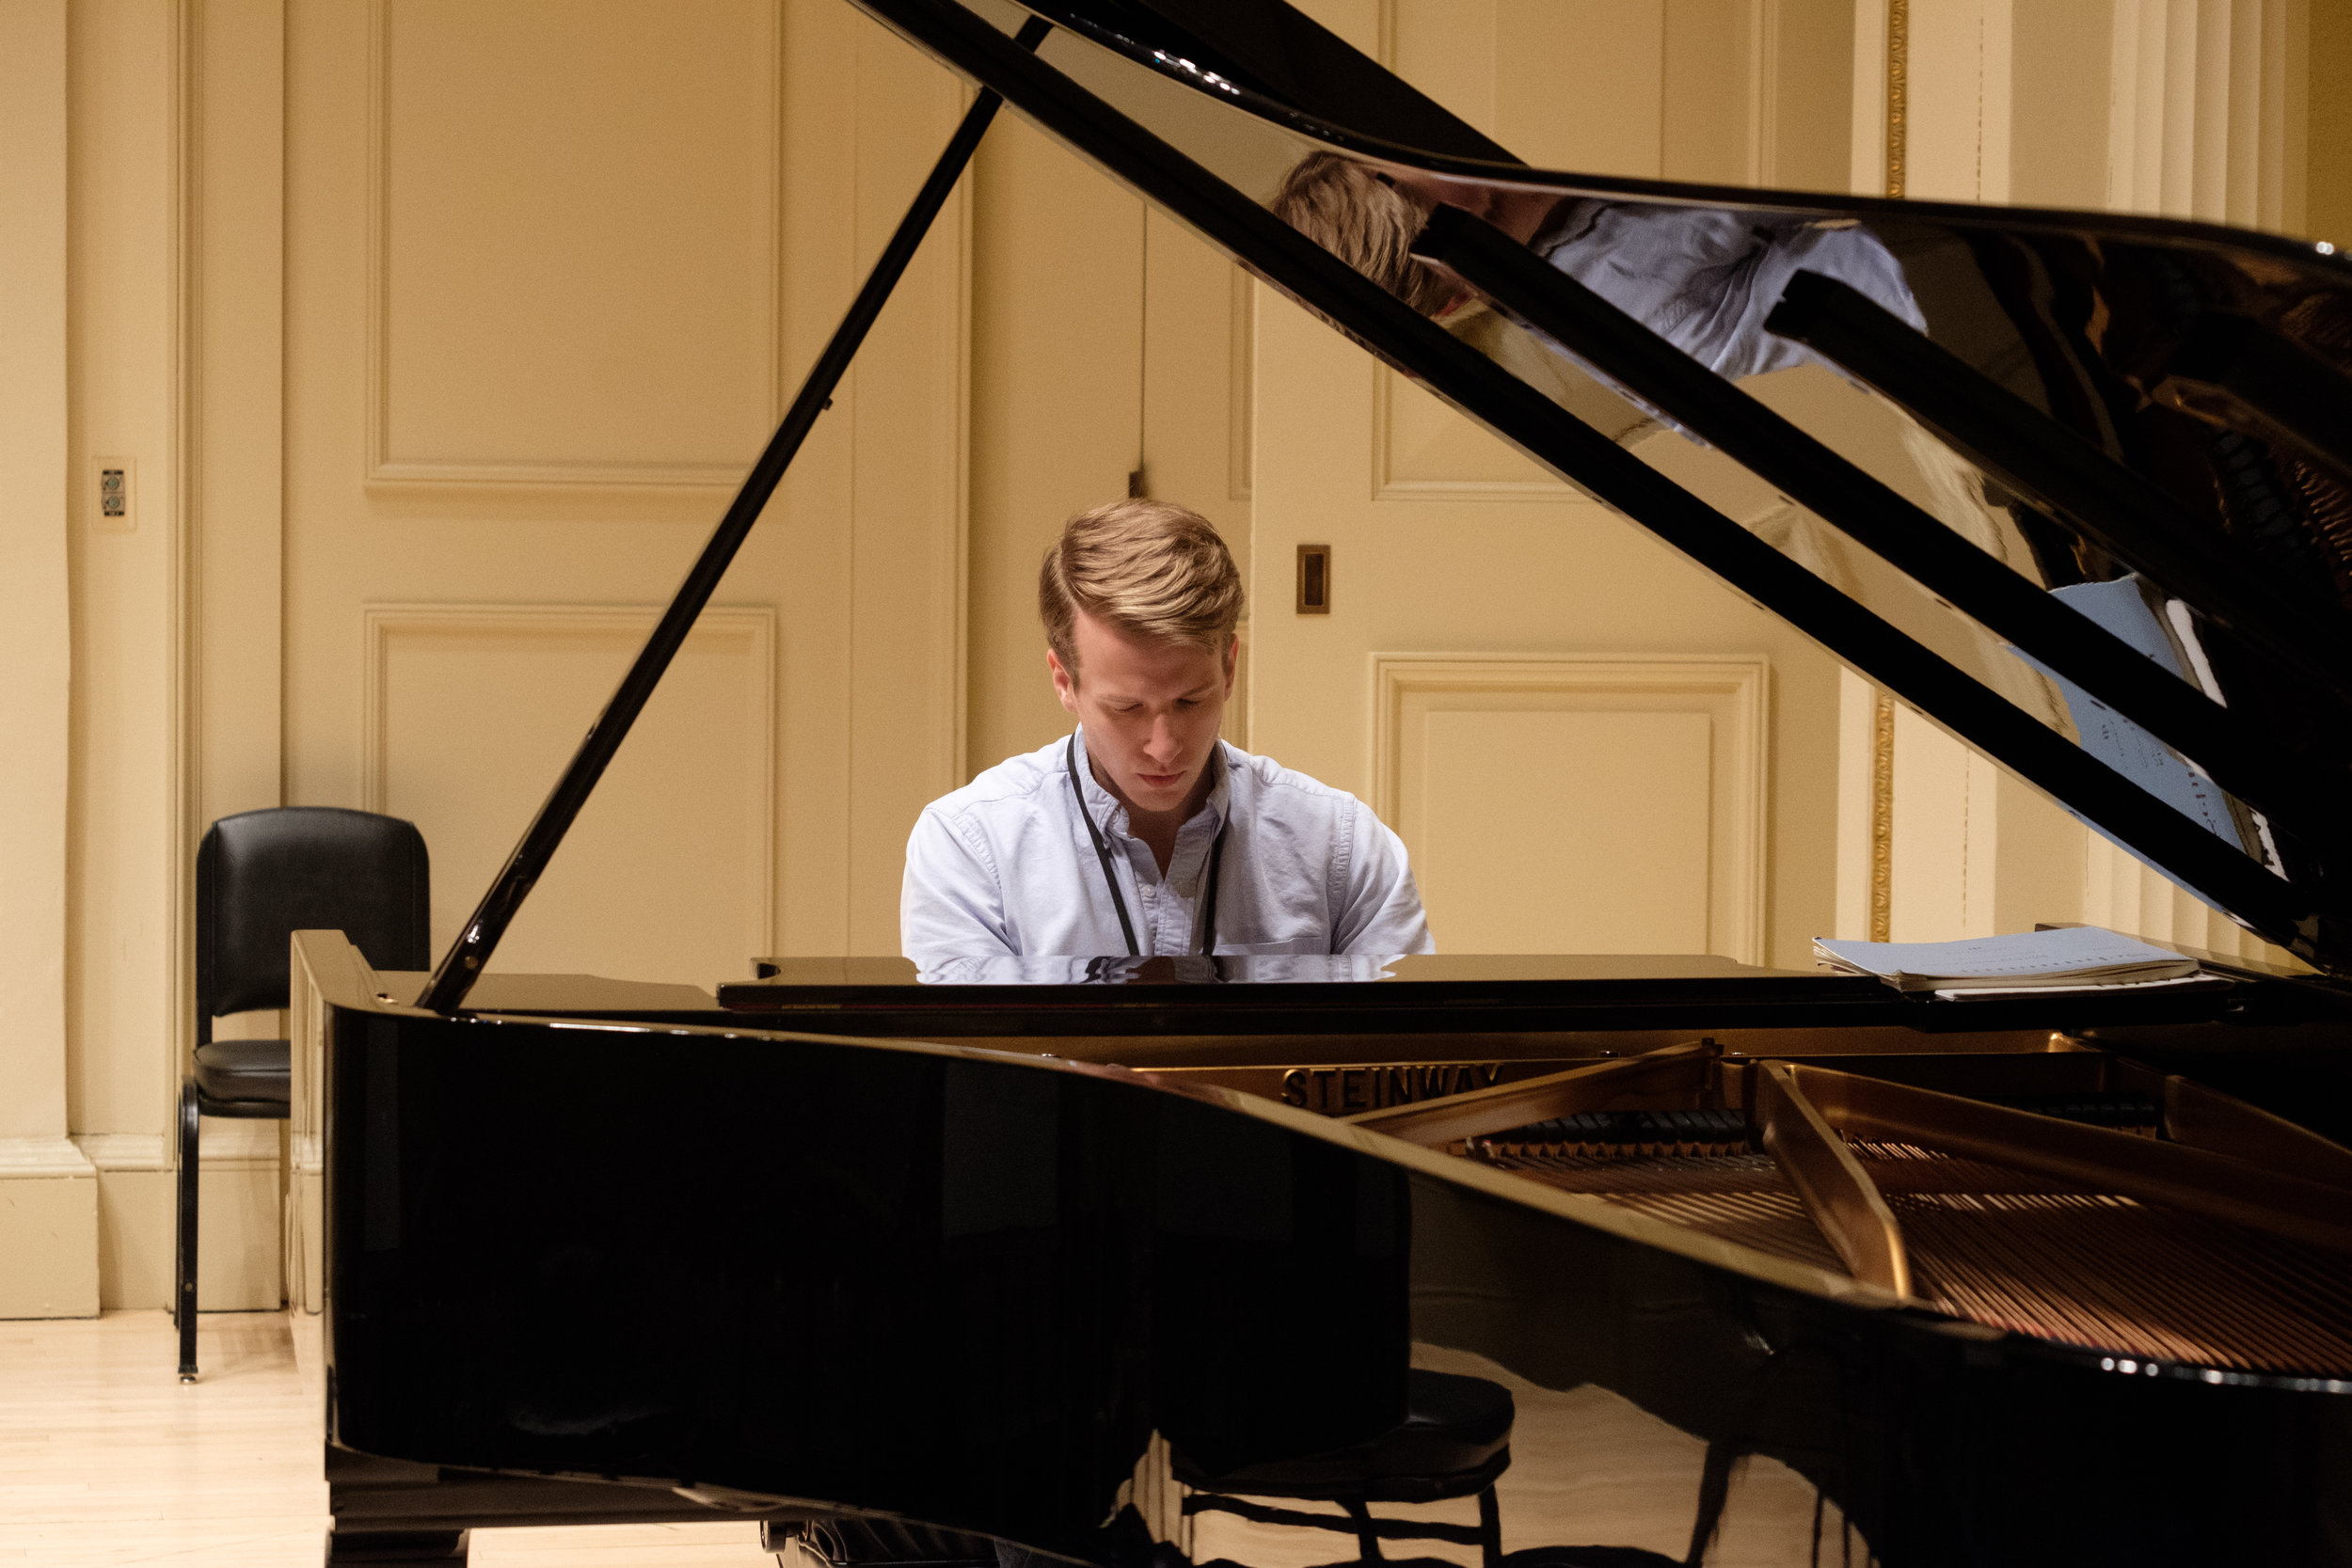 Mission - Founded in 2005 by pianist Elena Leonova, the New York Piano Society is dedicated to discovering, developing, and presenting pianists across diverse professions with opportunities to perform as soloists and alongside distinguished artists. NYPS is committed to bringing high-quality classical music programs to our community.